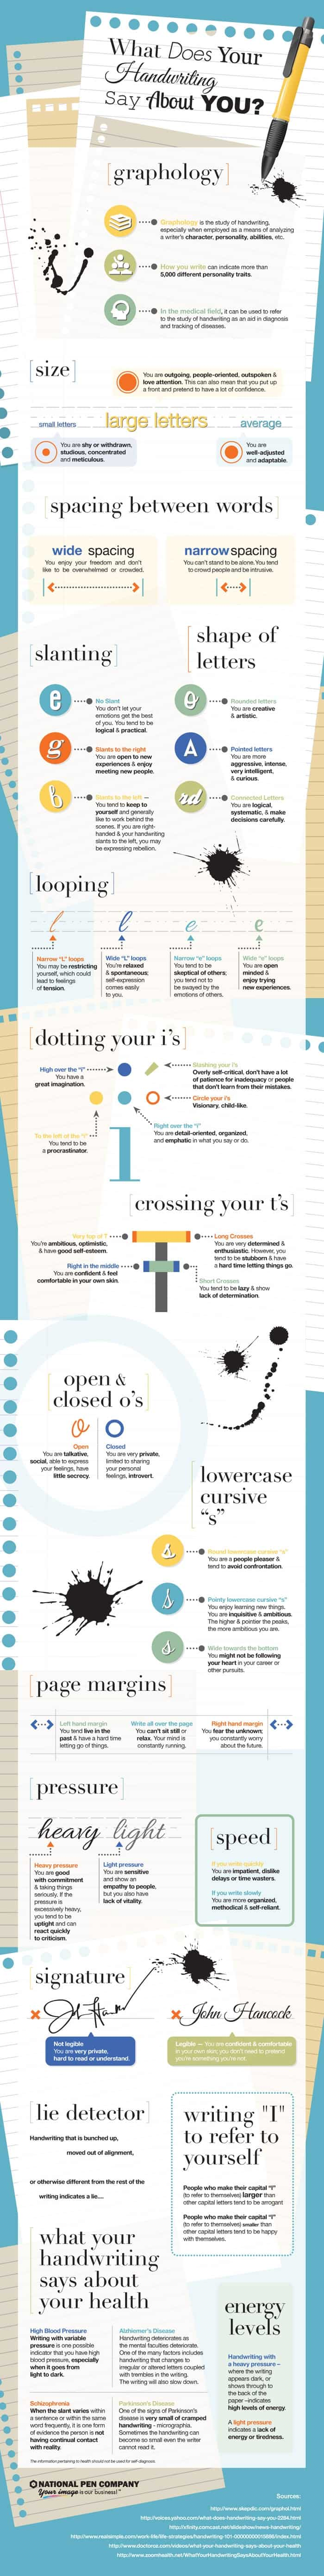 http://dailyinfographic.com/wp-content/uploads/2013/08/what-does-your-handwriting-say-about-you_51cb3586d1131.jpg